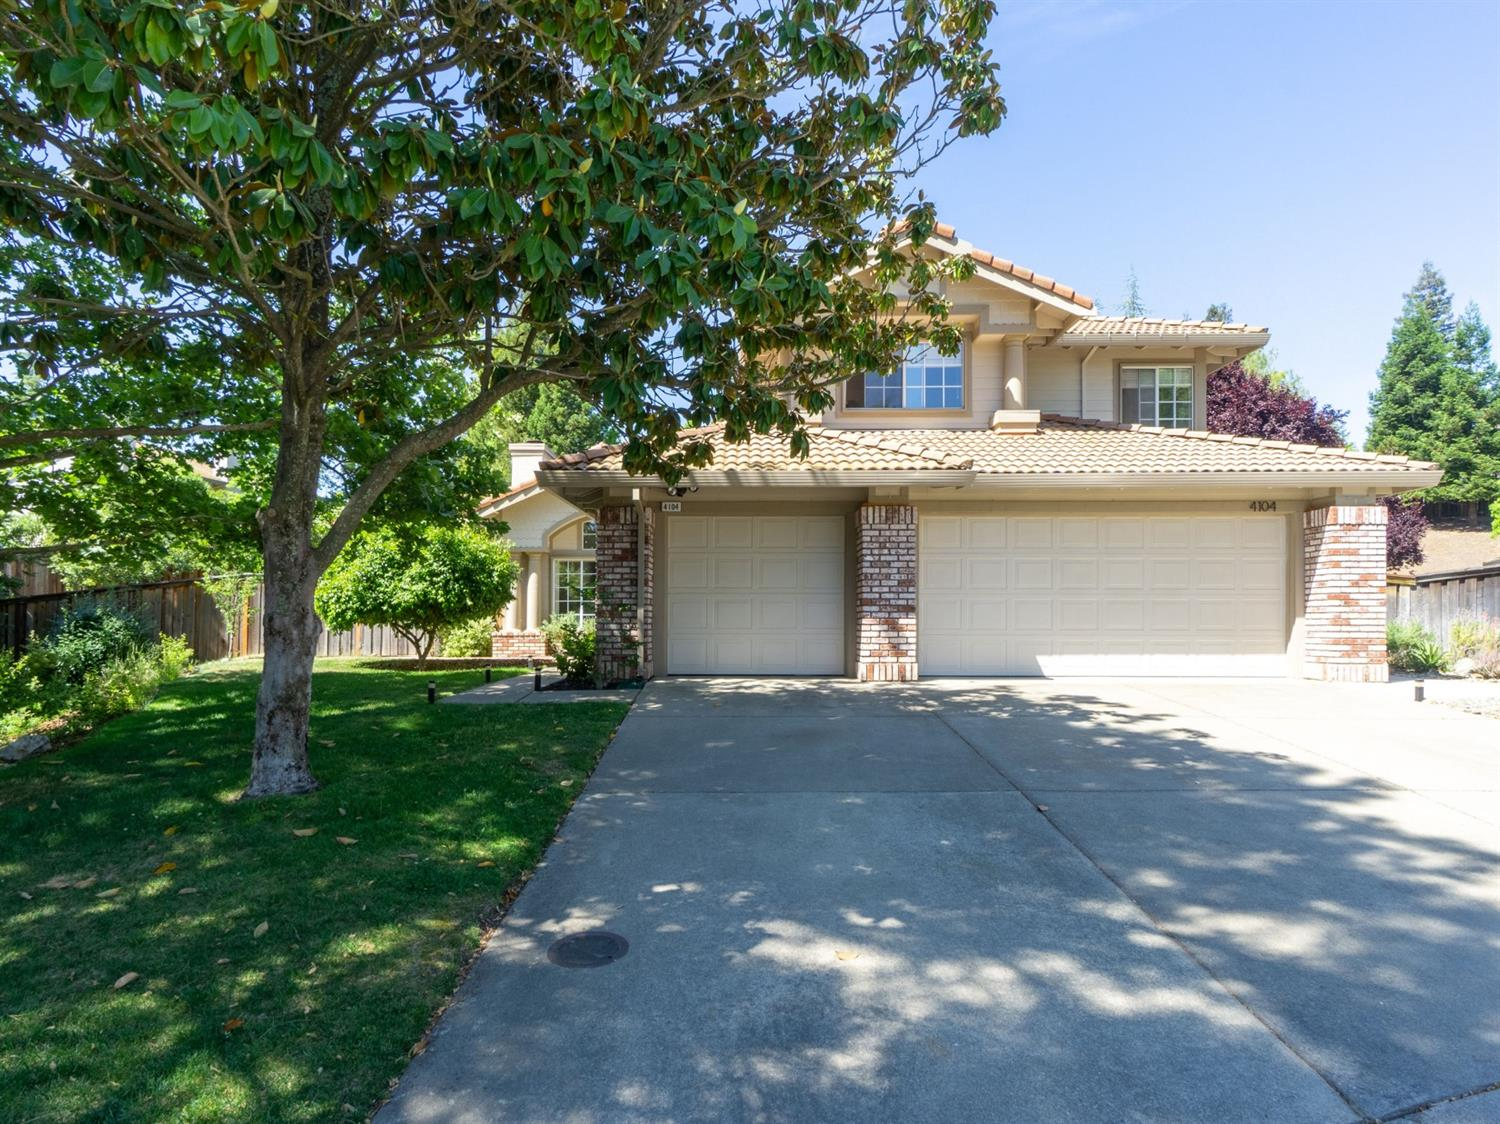 Situated in the desirable Green Valley Hills neighborhood on a Cul-de-Sac close to great schools, community parks & Folsom Lake. Gracious 4BR-3BA home with an updated retro style featuring cathedral ceilings, 3 fireplaces, newer flooring, lighting, & hardware, interior shutters. The updated kitchen boasts Bosch double ovens, Wolf induction cooktop, updated cabinets & fixtures, retro chandelier in nook, granite counters & dining bar. Huge family room w/brick fireplace & beverage bar. Updated ground floor bed/bath. Master suite: fireplace, huge closet, enclosed shoe storage! Abundant storage & deep sink in laundry rm. Big 3-car garage w/workbench & cabinets. Sun Room is a fab informal space for games & entertaining! Backyard Paradise! Relax i